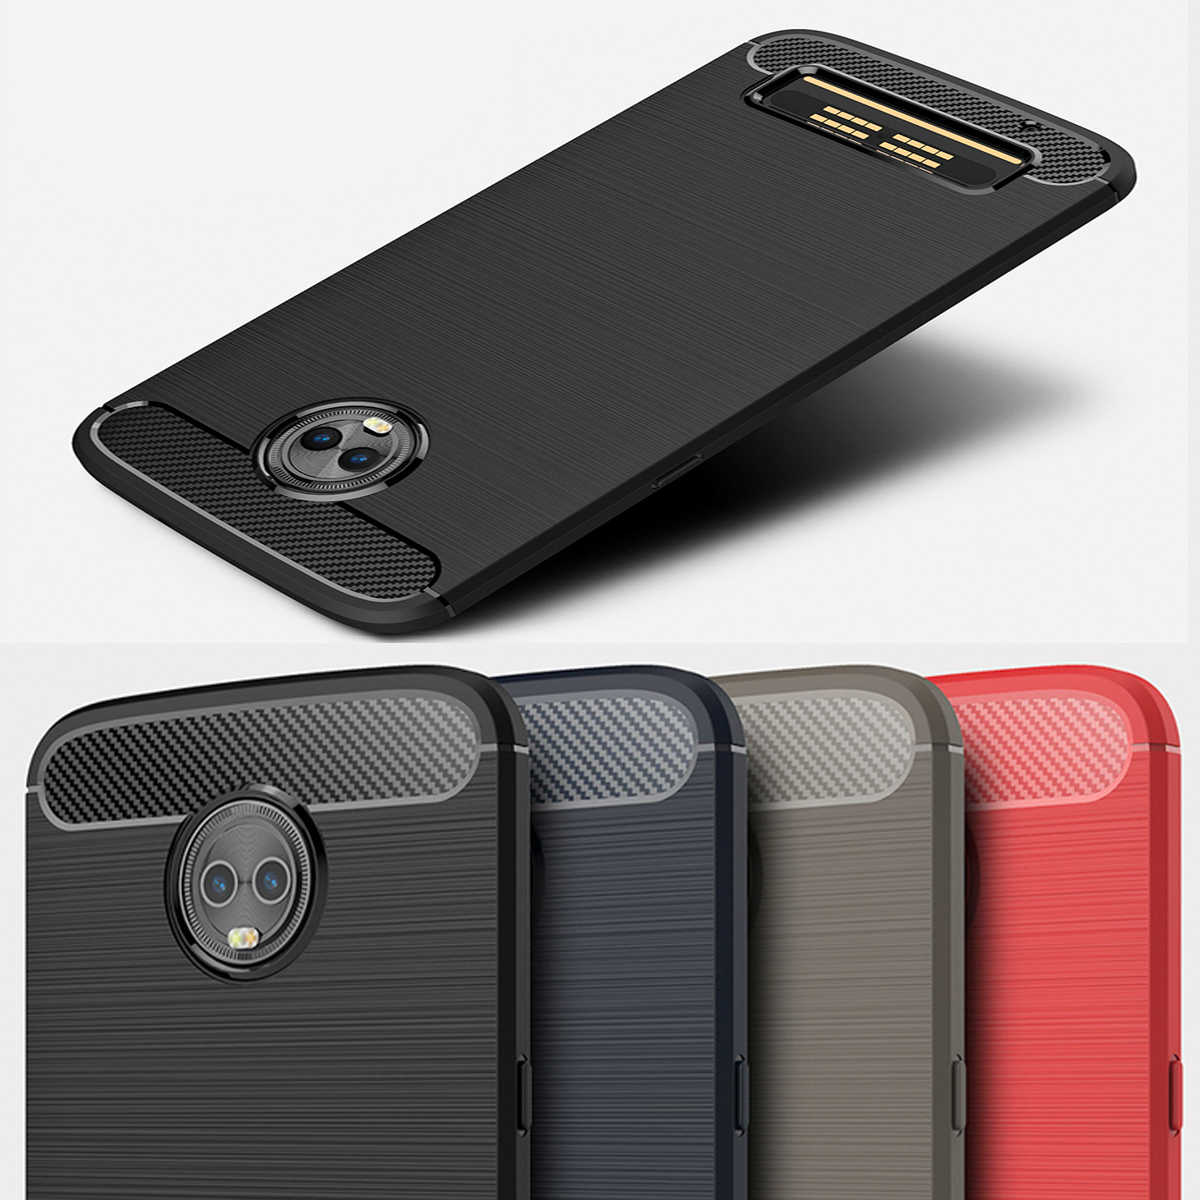 Voor Motorola Moto Z3 Play Case Cover Voor Moto Een Power Vision Action Zoom X4 2017 Z2 Kracht E6 P40 g7 G6 E5 Play Plus Power Capa